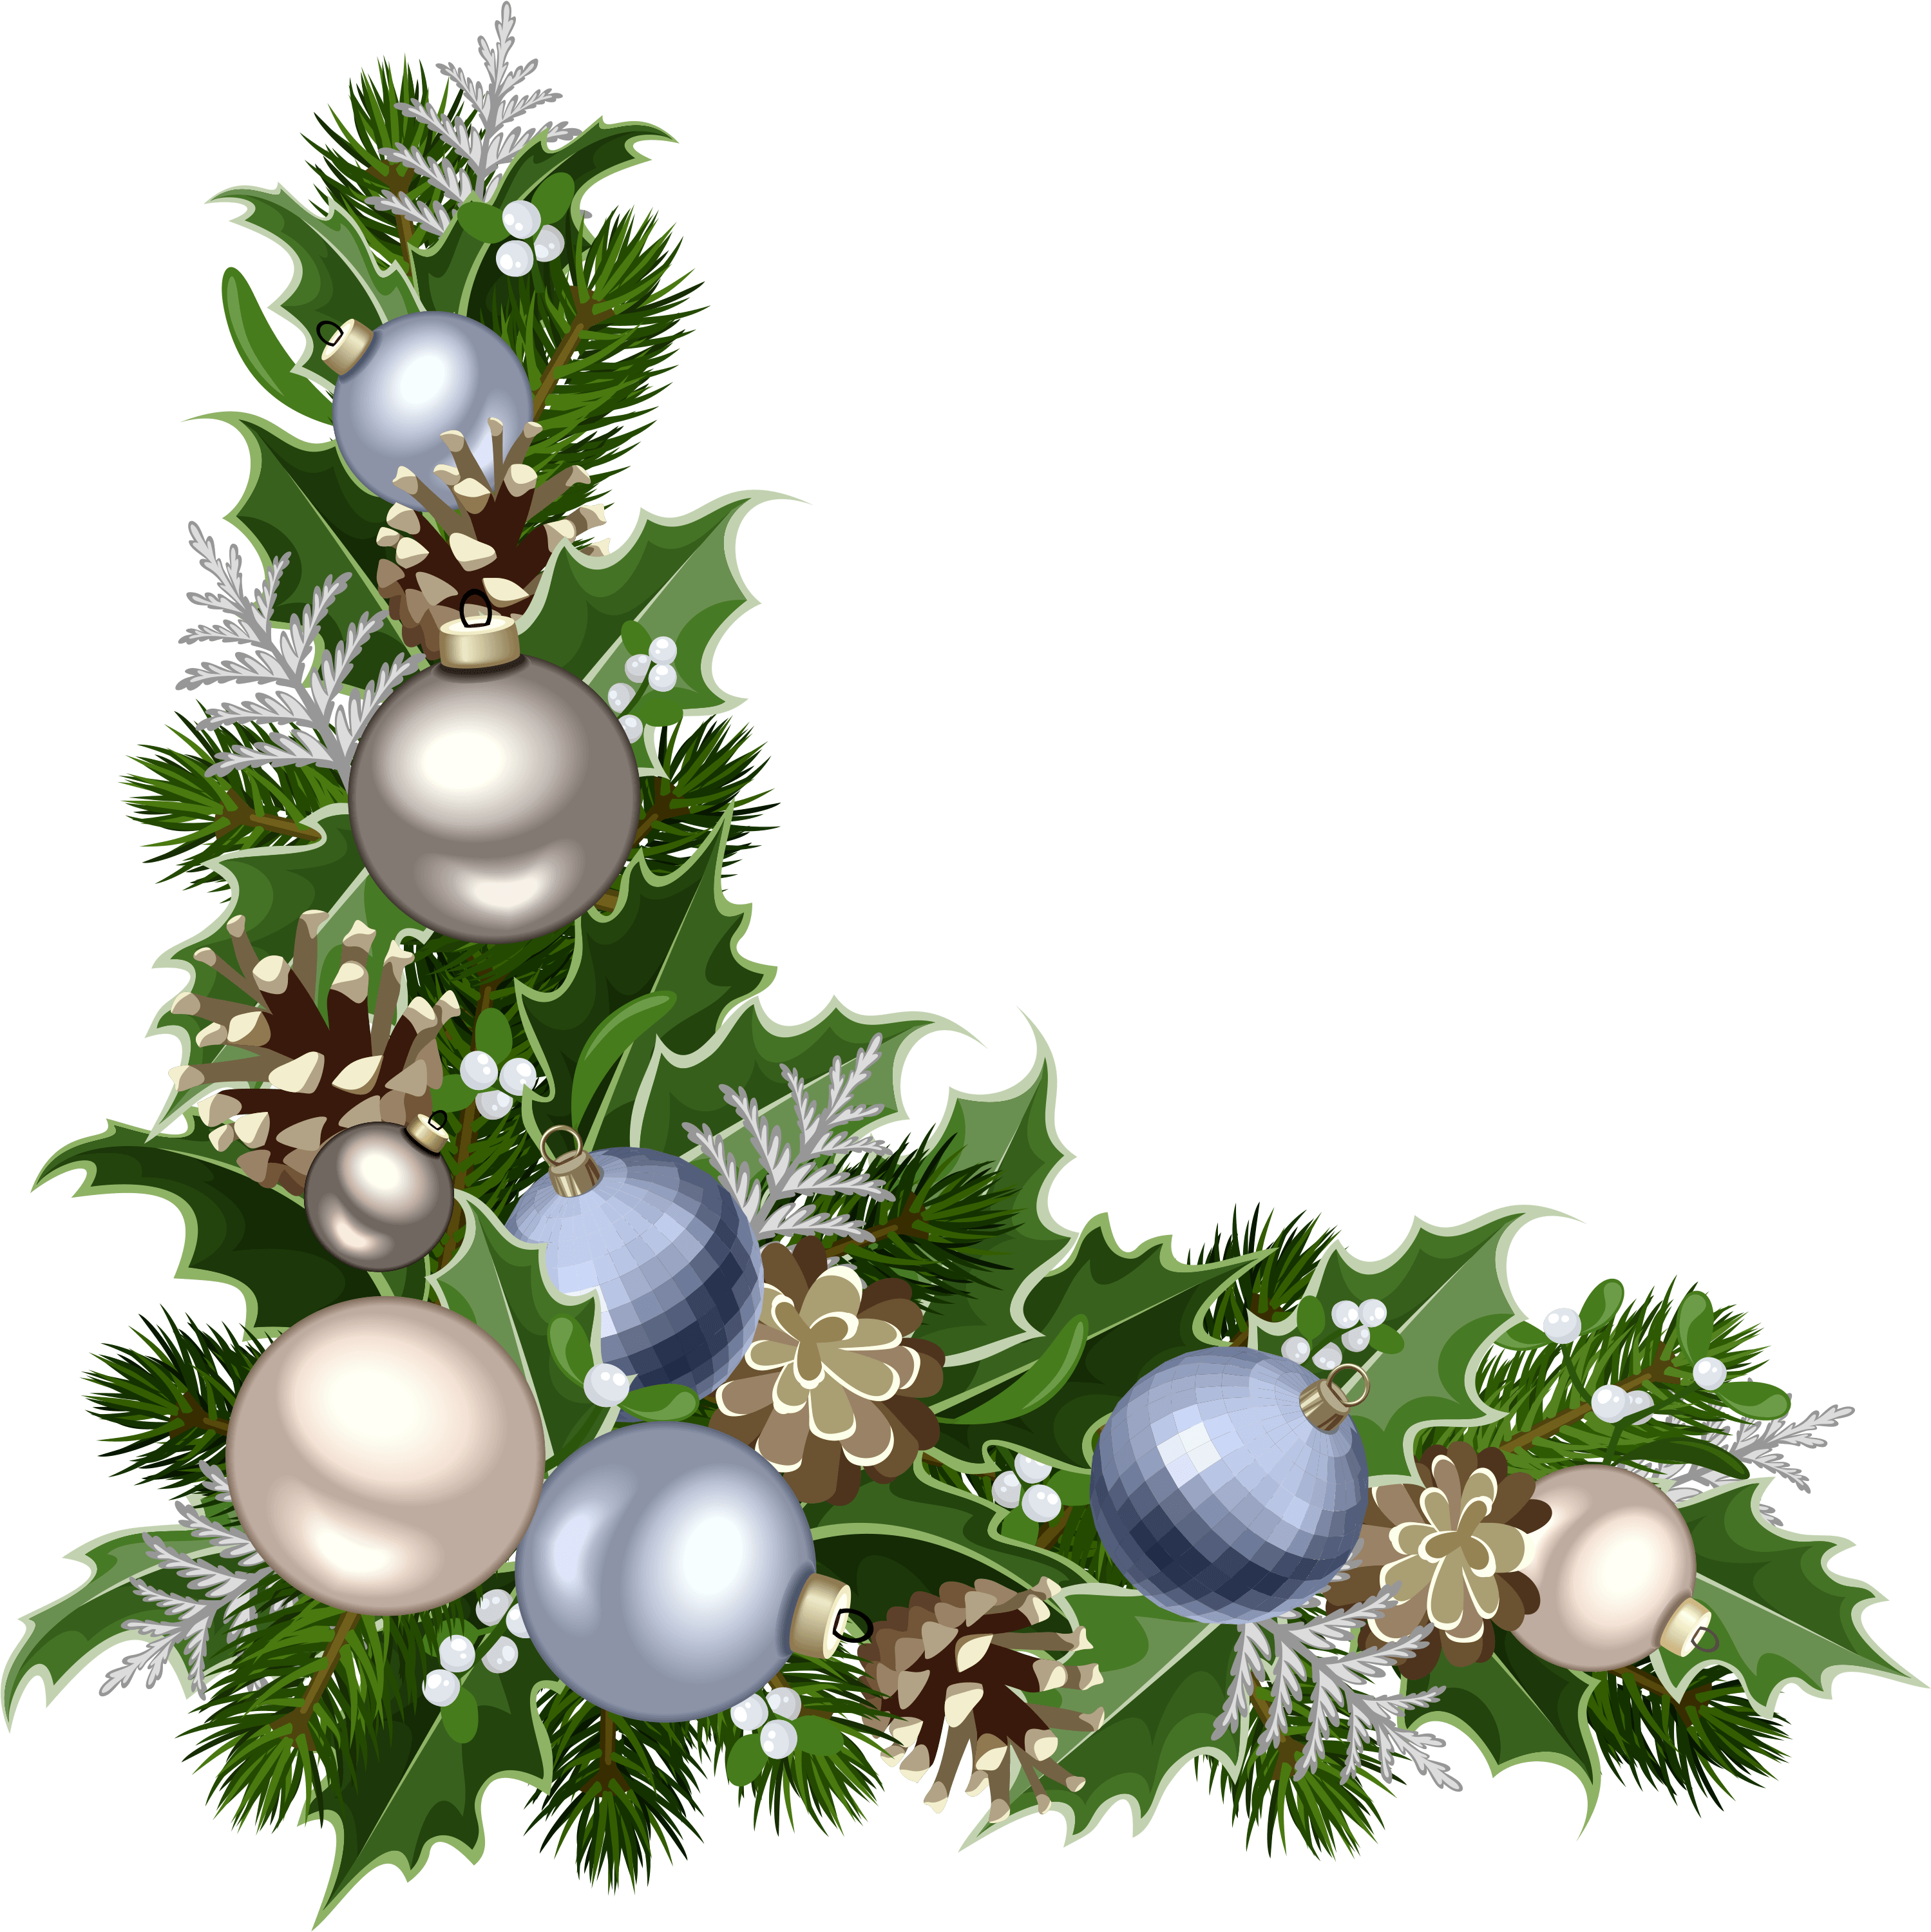 Christmas png corner. Download deco with decorations